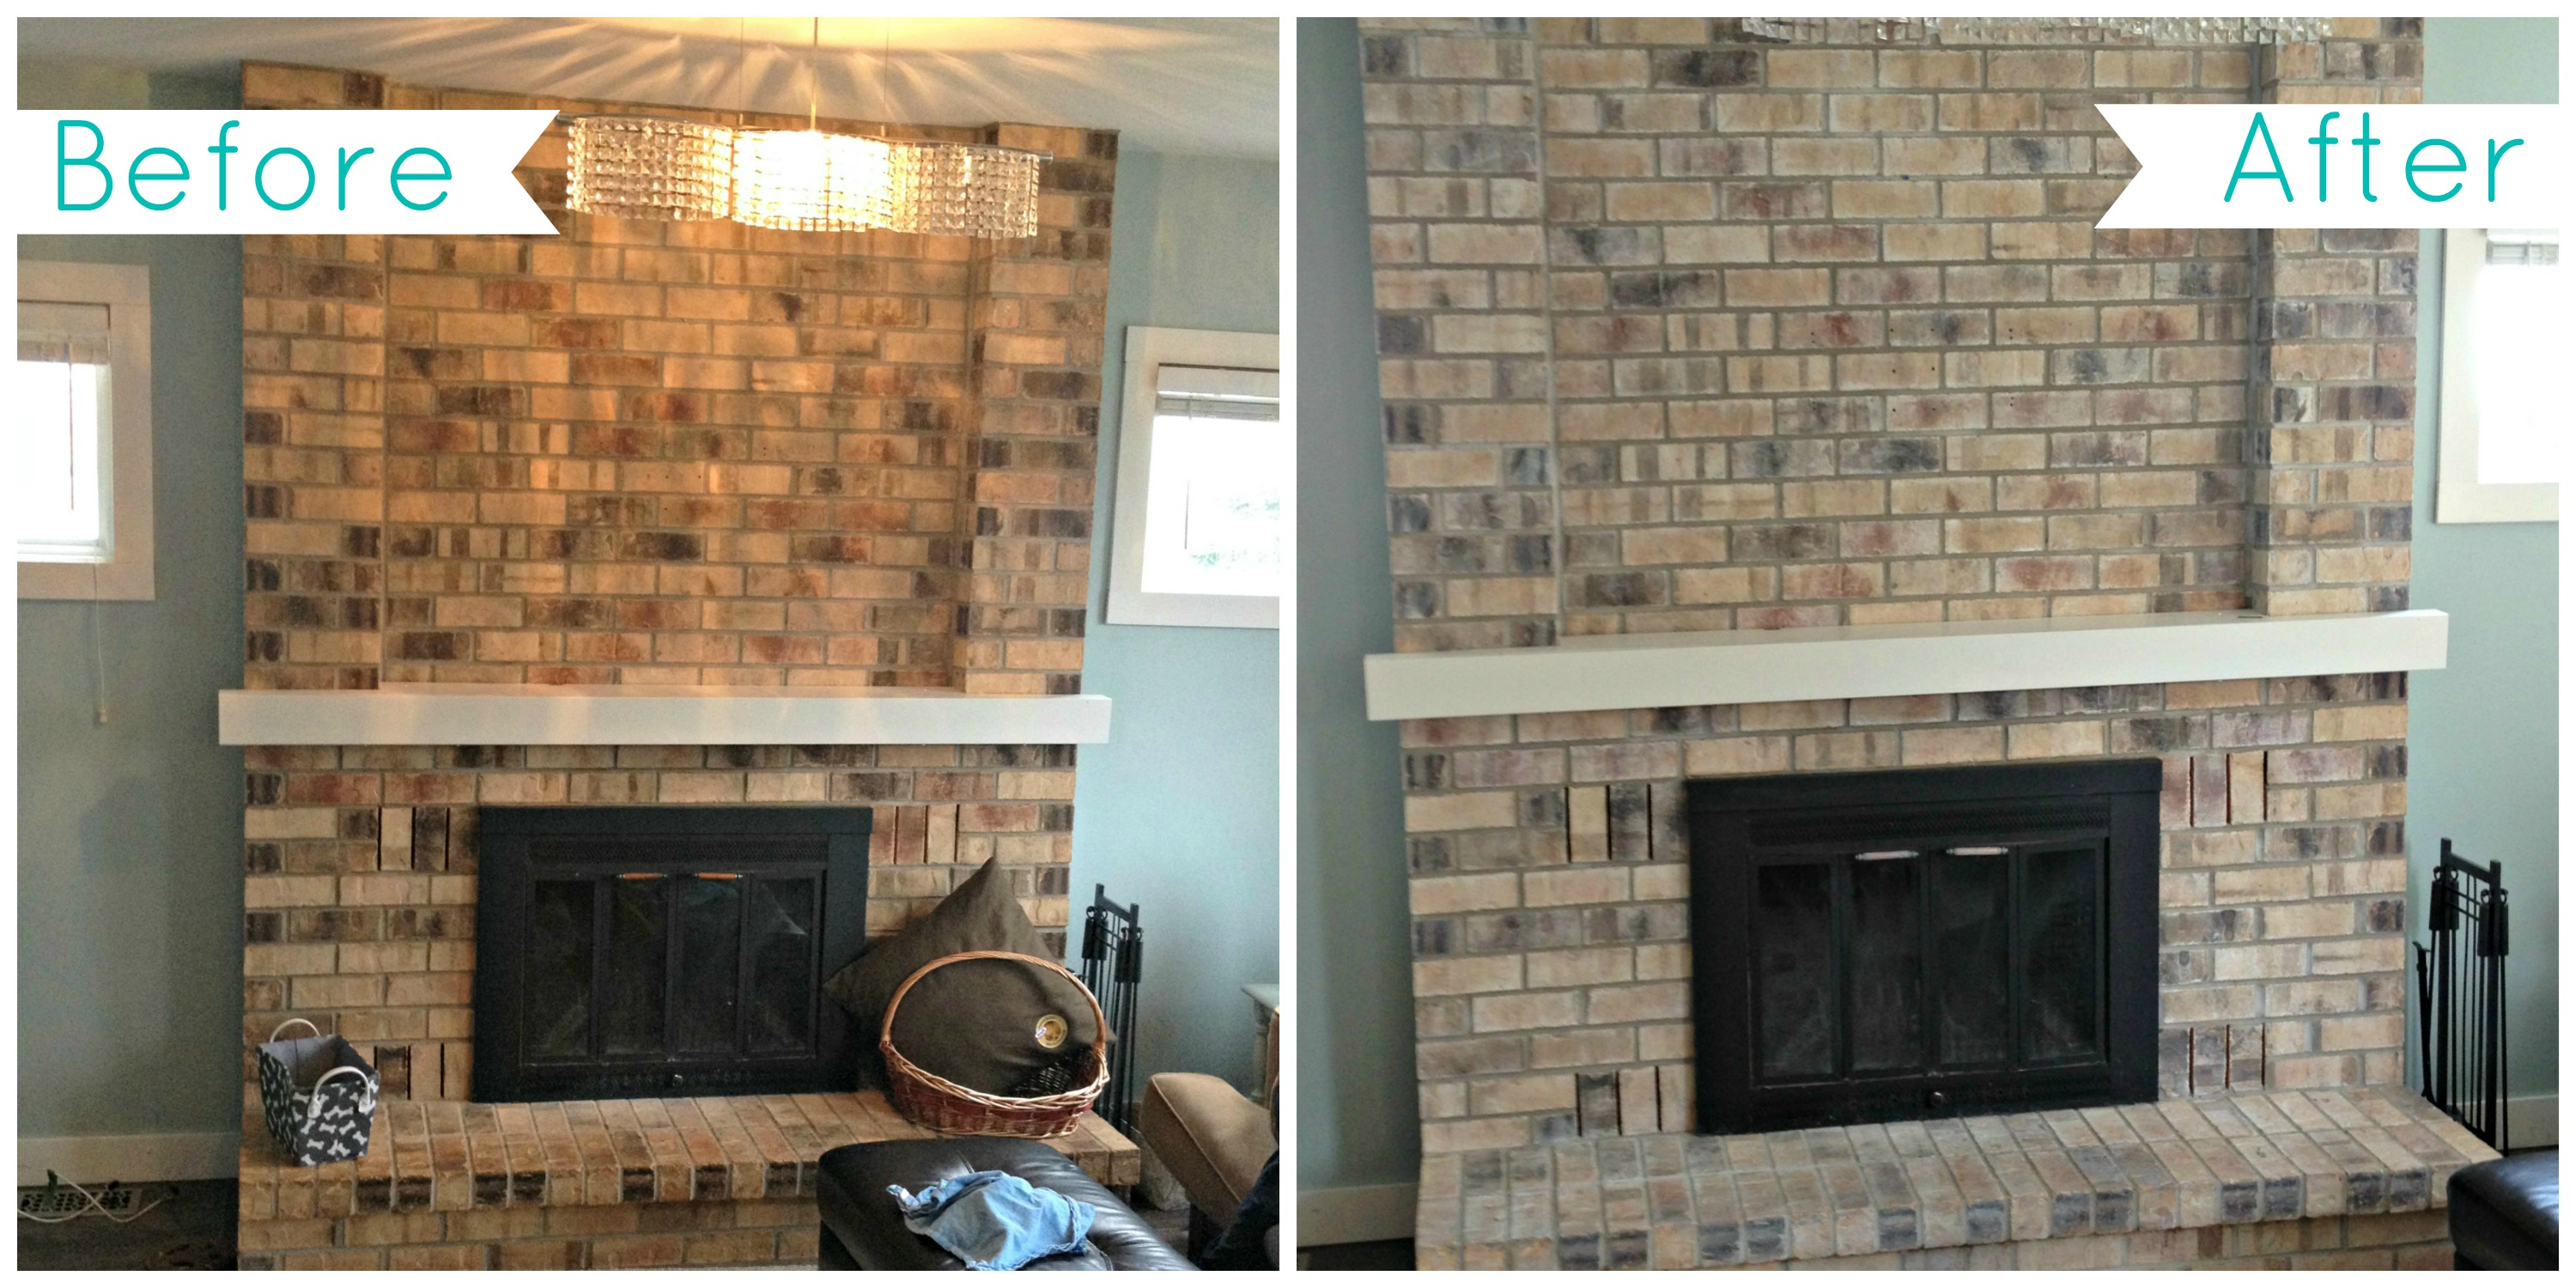 Whitewash Brick Fireplace for You : Whitewash Brick Fireplace Before And After. Whitewash brick fireplace before and after. white